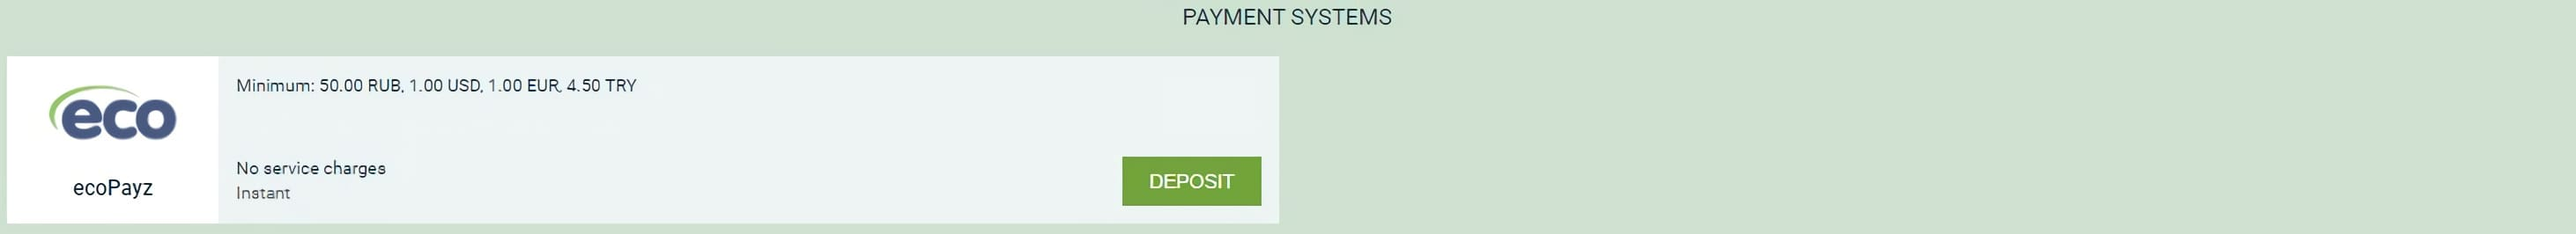 payment systems Ecopayz